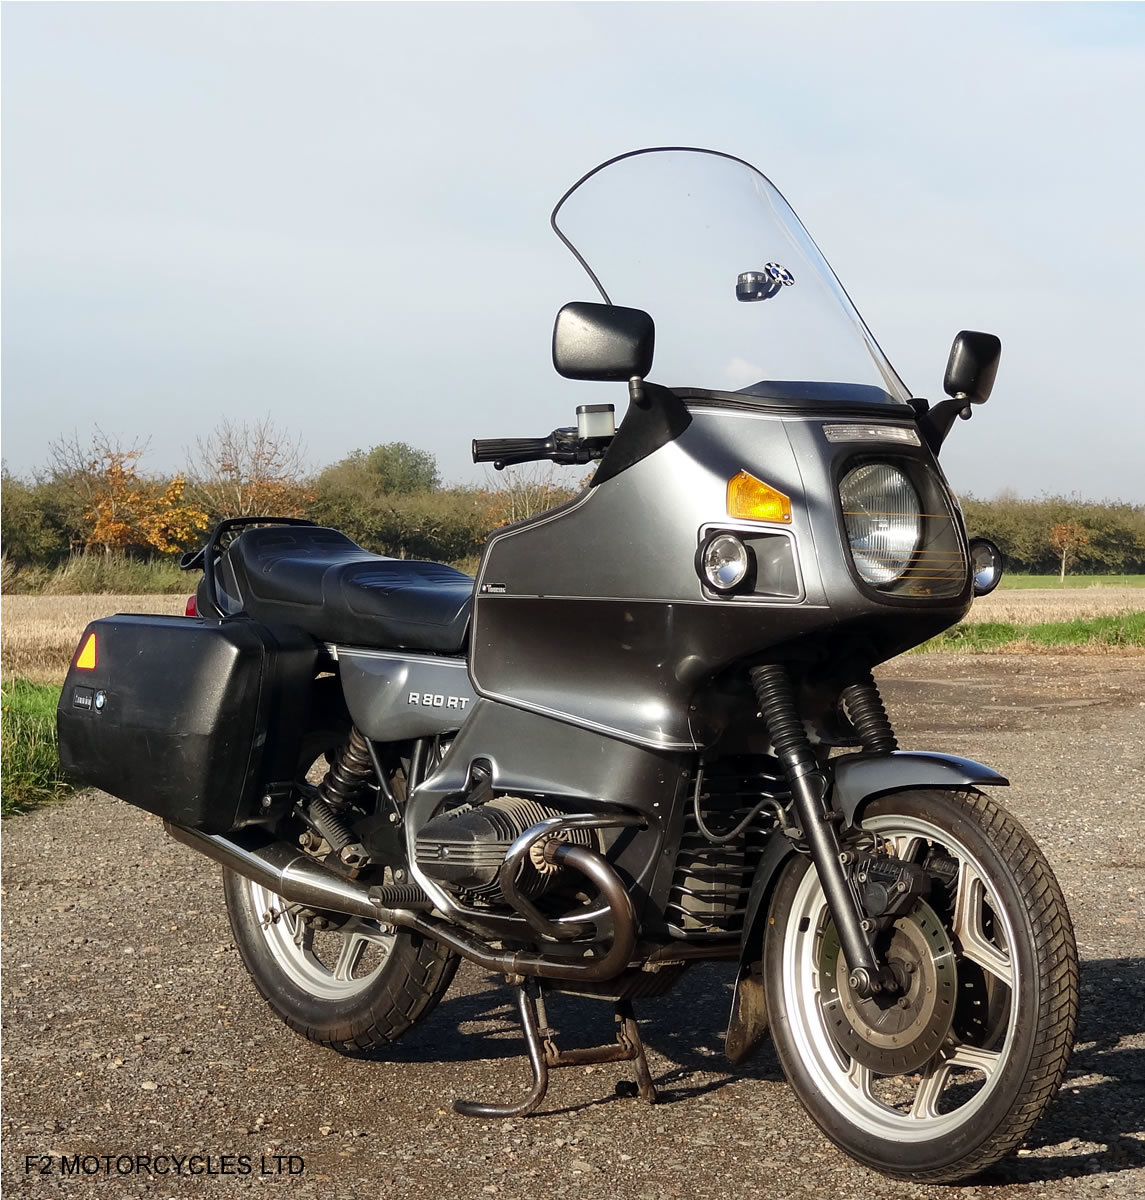 1989 BMW R80RT 1 owner, long MOT, serviced and ready to ride For Sale (picture 1 of 6)